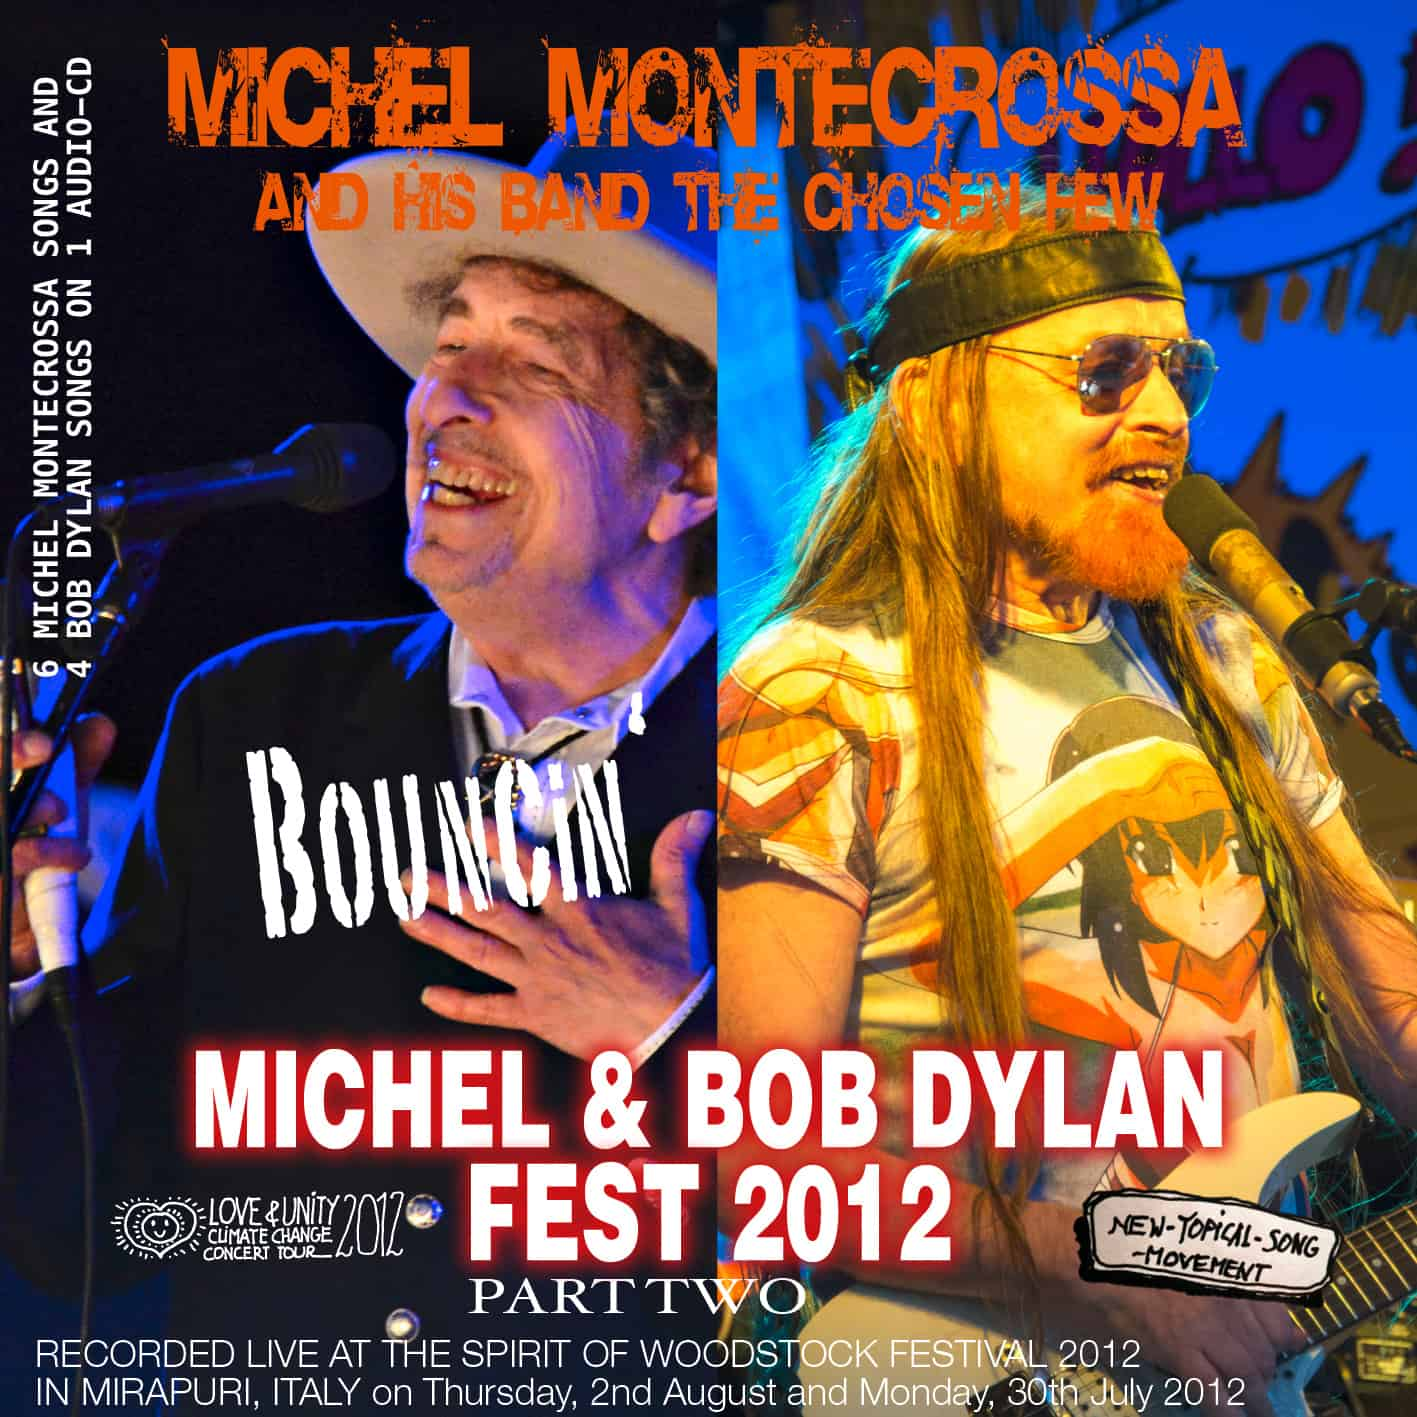 Bouncin' - Part Two of Michel Montecrossa's Michel & Bob Dylan Fest 2012